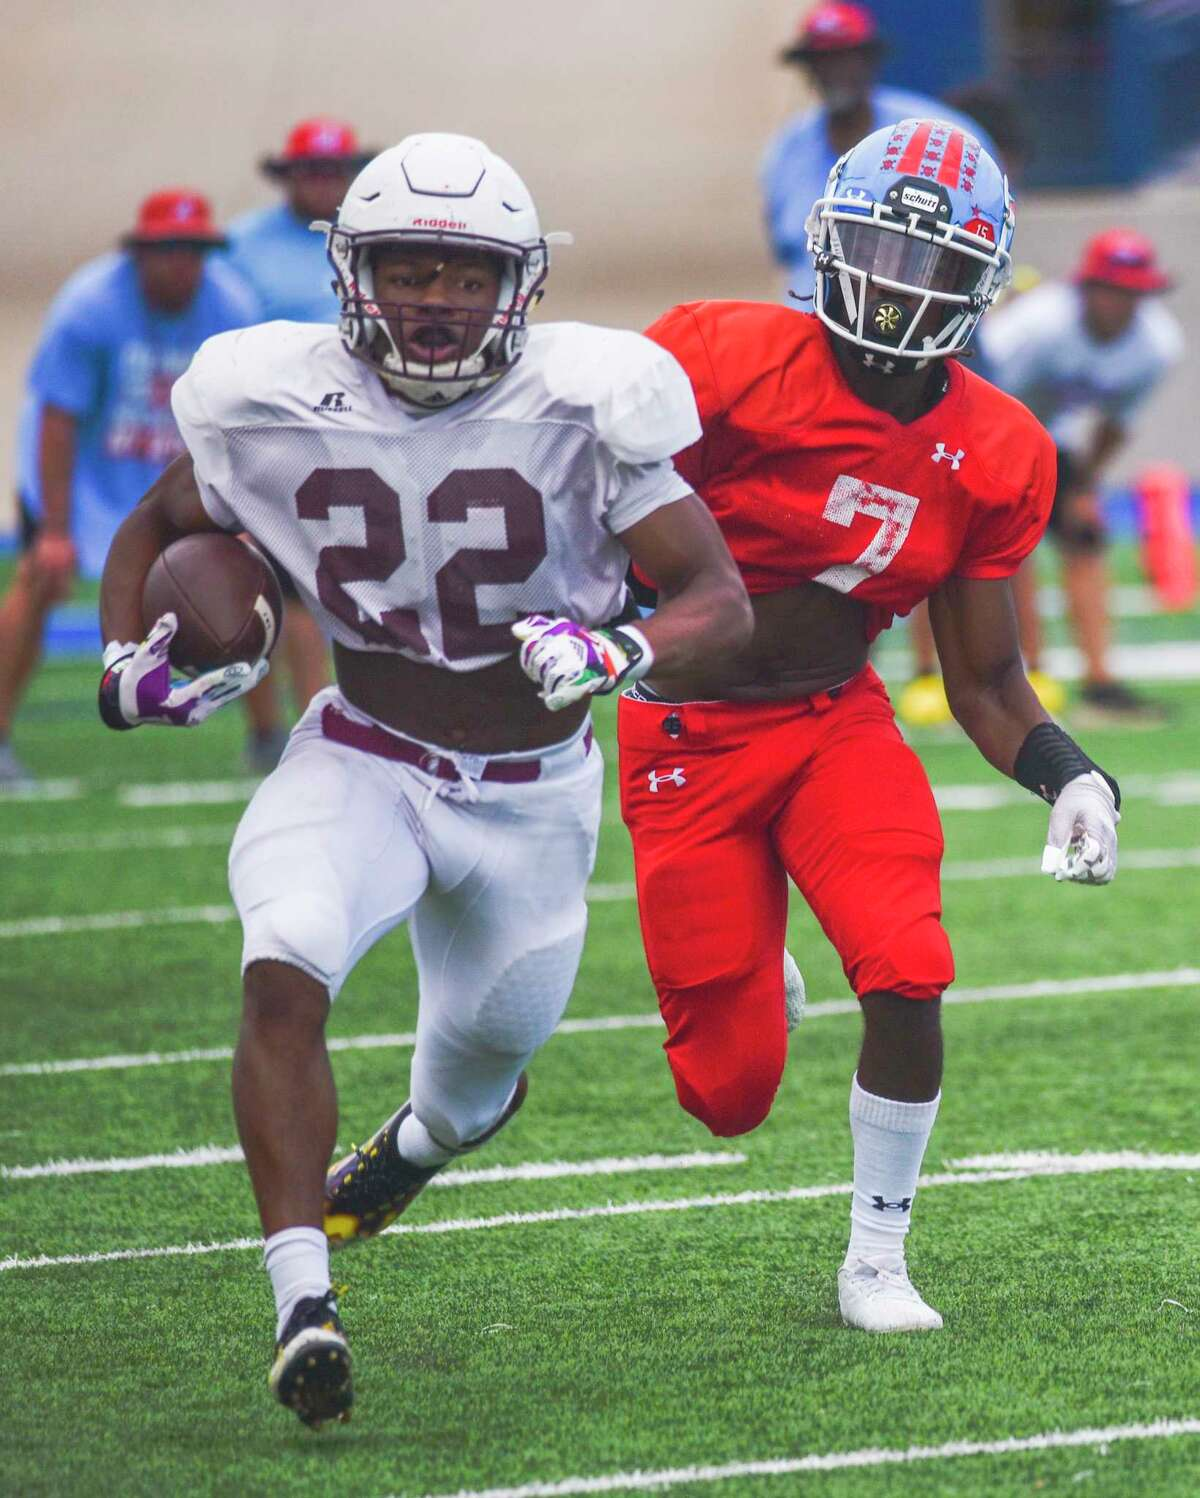 Legacy's Makhilyn Young (22) carries the ball as Monterey's KyShon Harris (7) trails him Friday, Aug. 13, 2021 at Grande Communications Stadium. Jacy Lewis/Reporter-Telegram